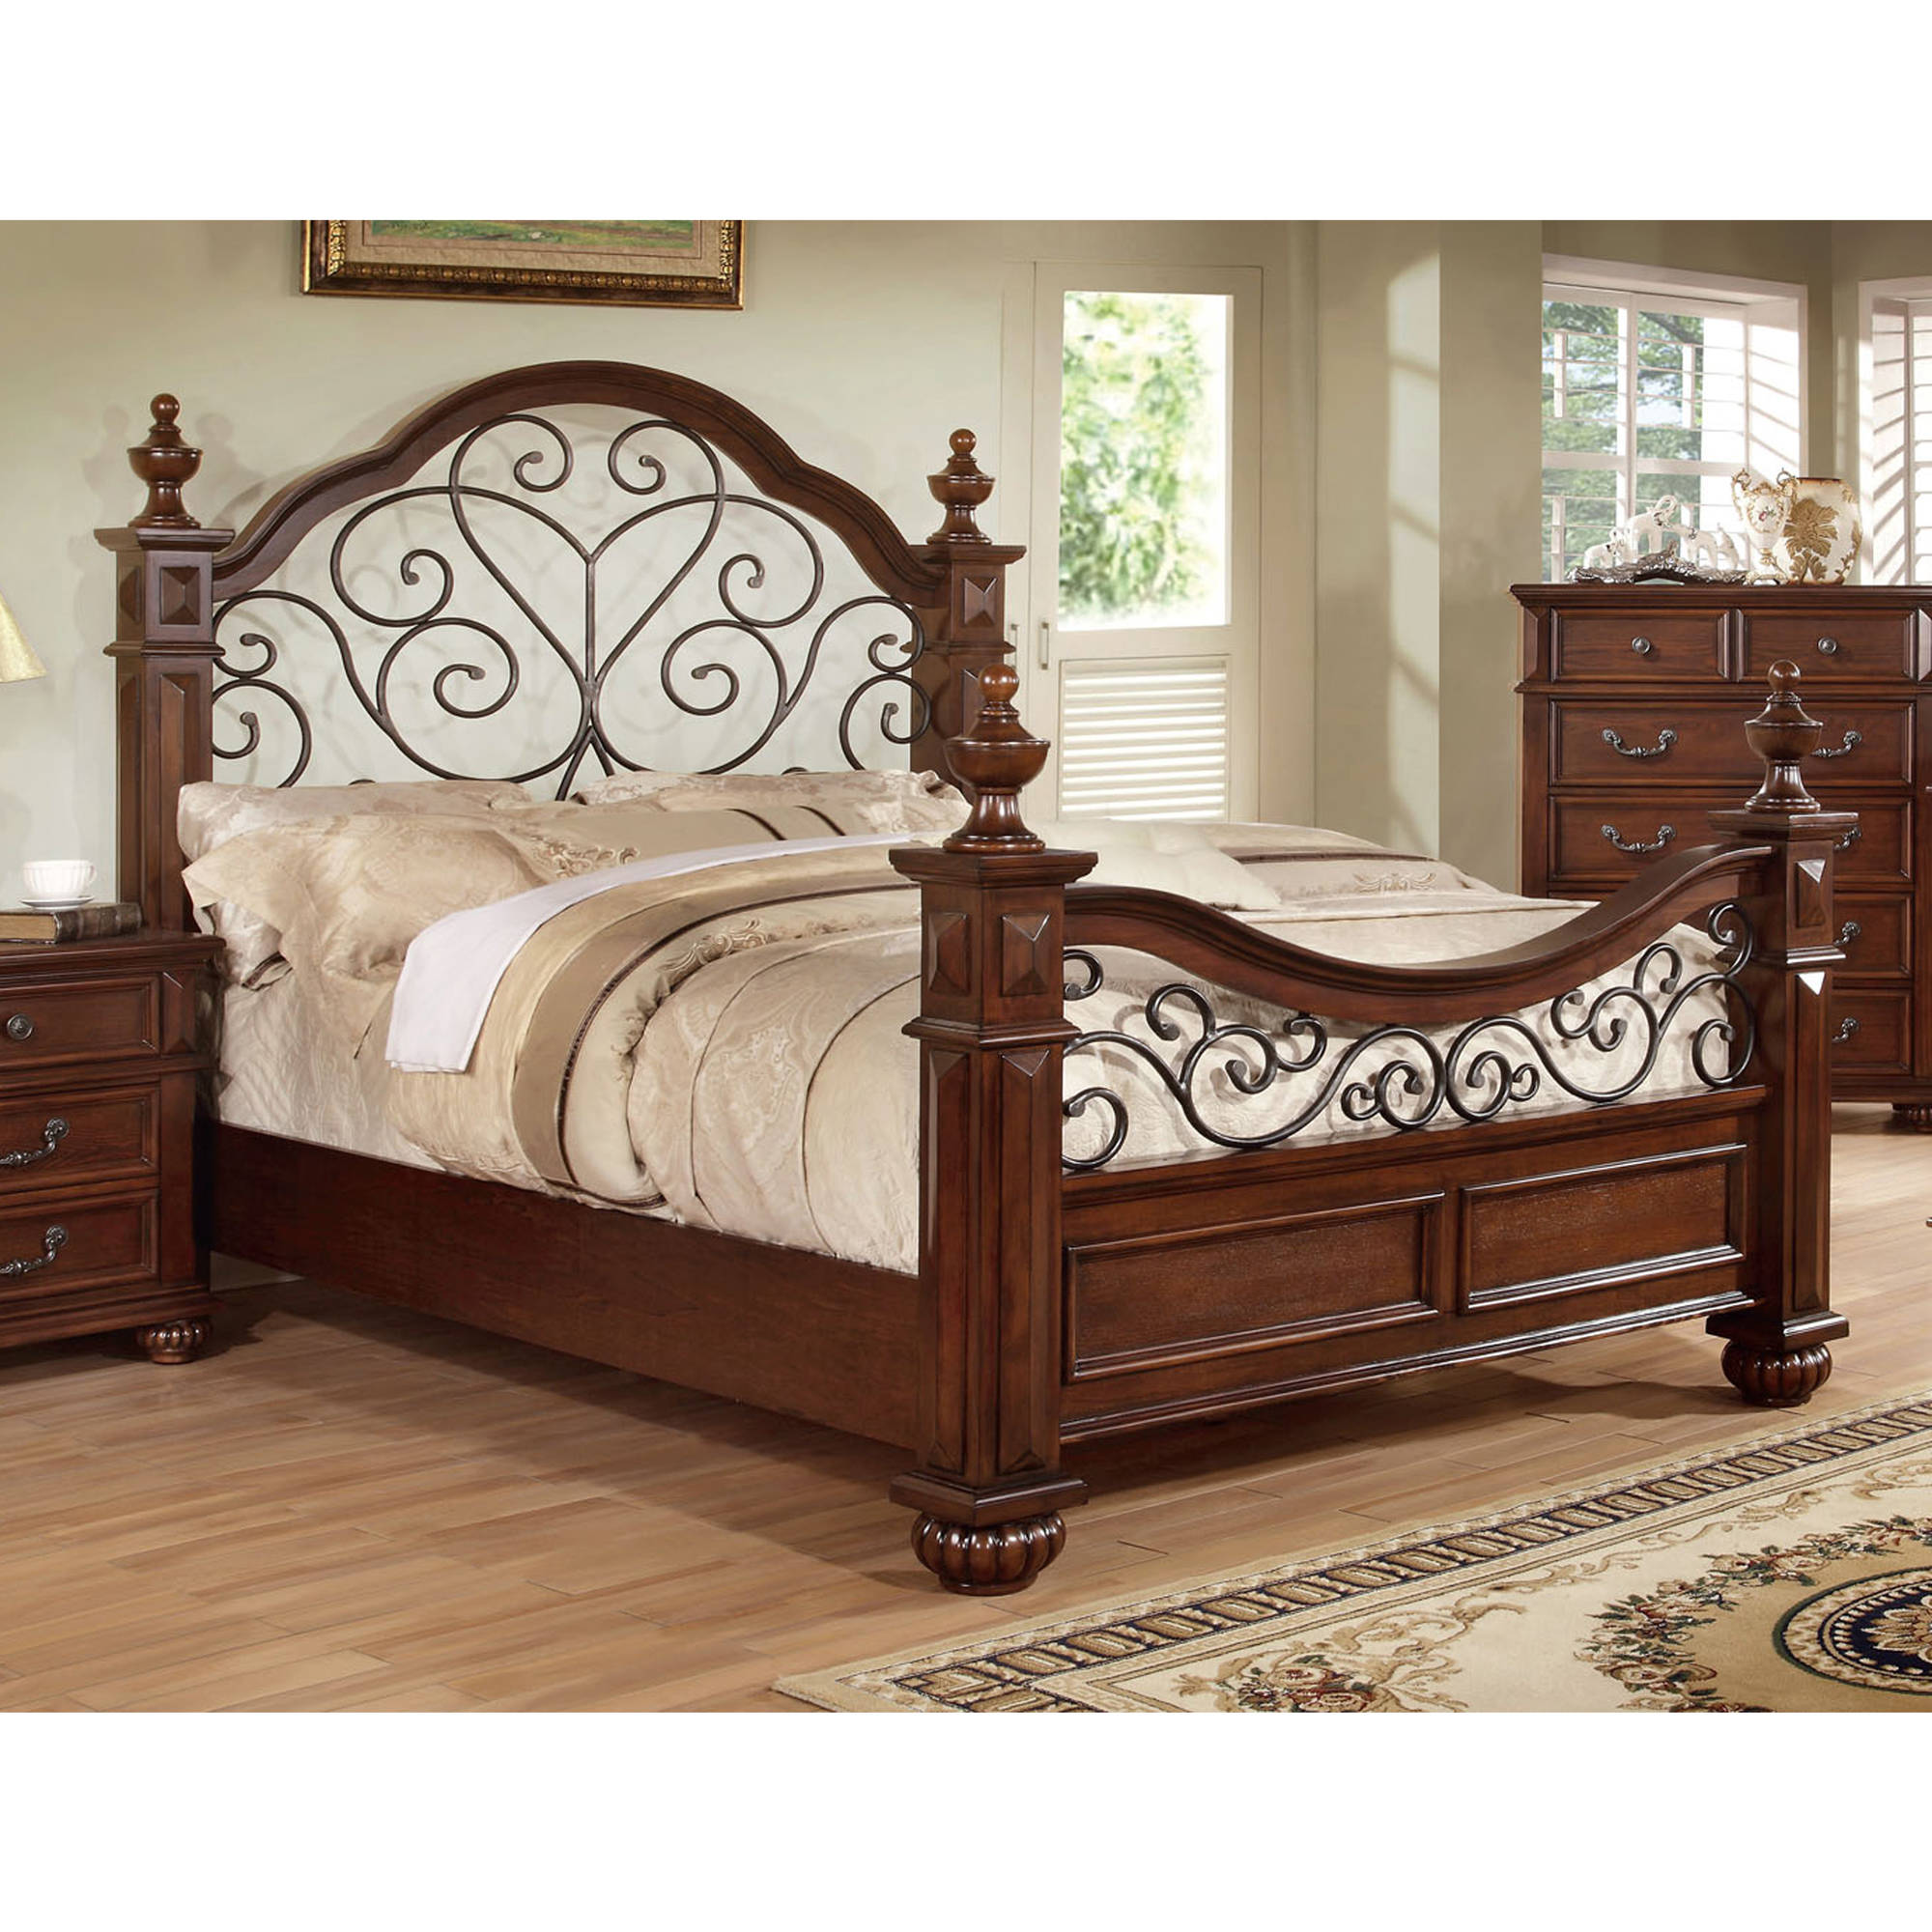 Furniture of America Constance Traditional Queen Bed, Antique Dark Oak